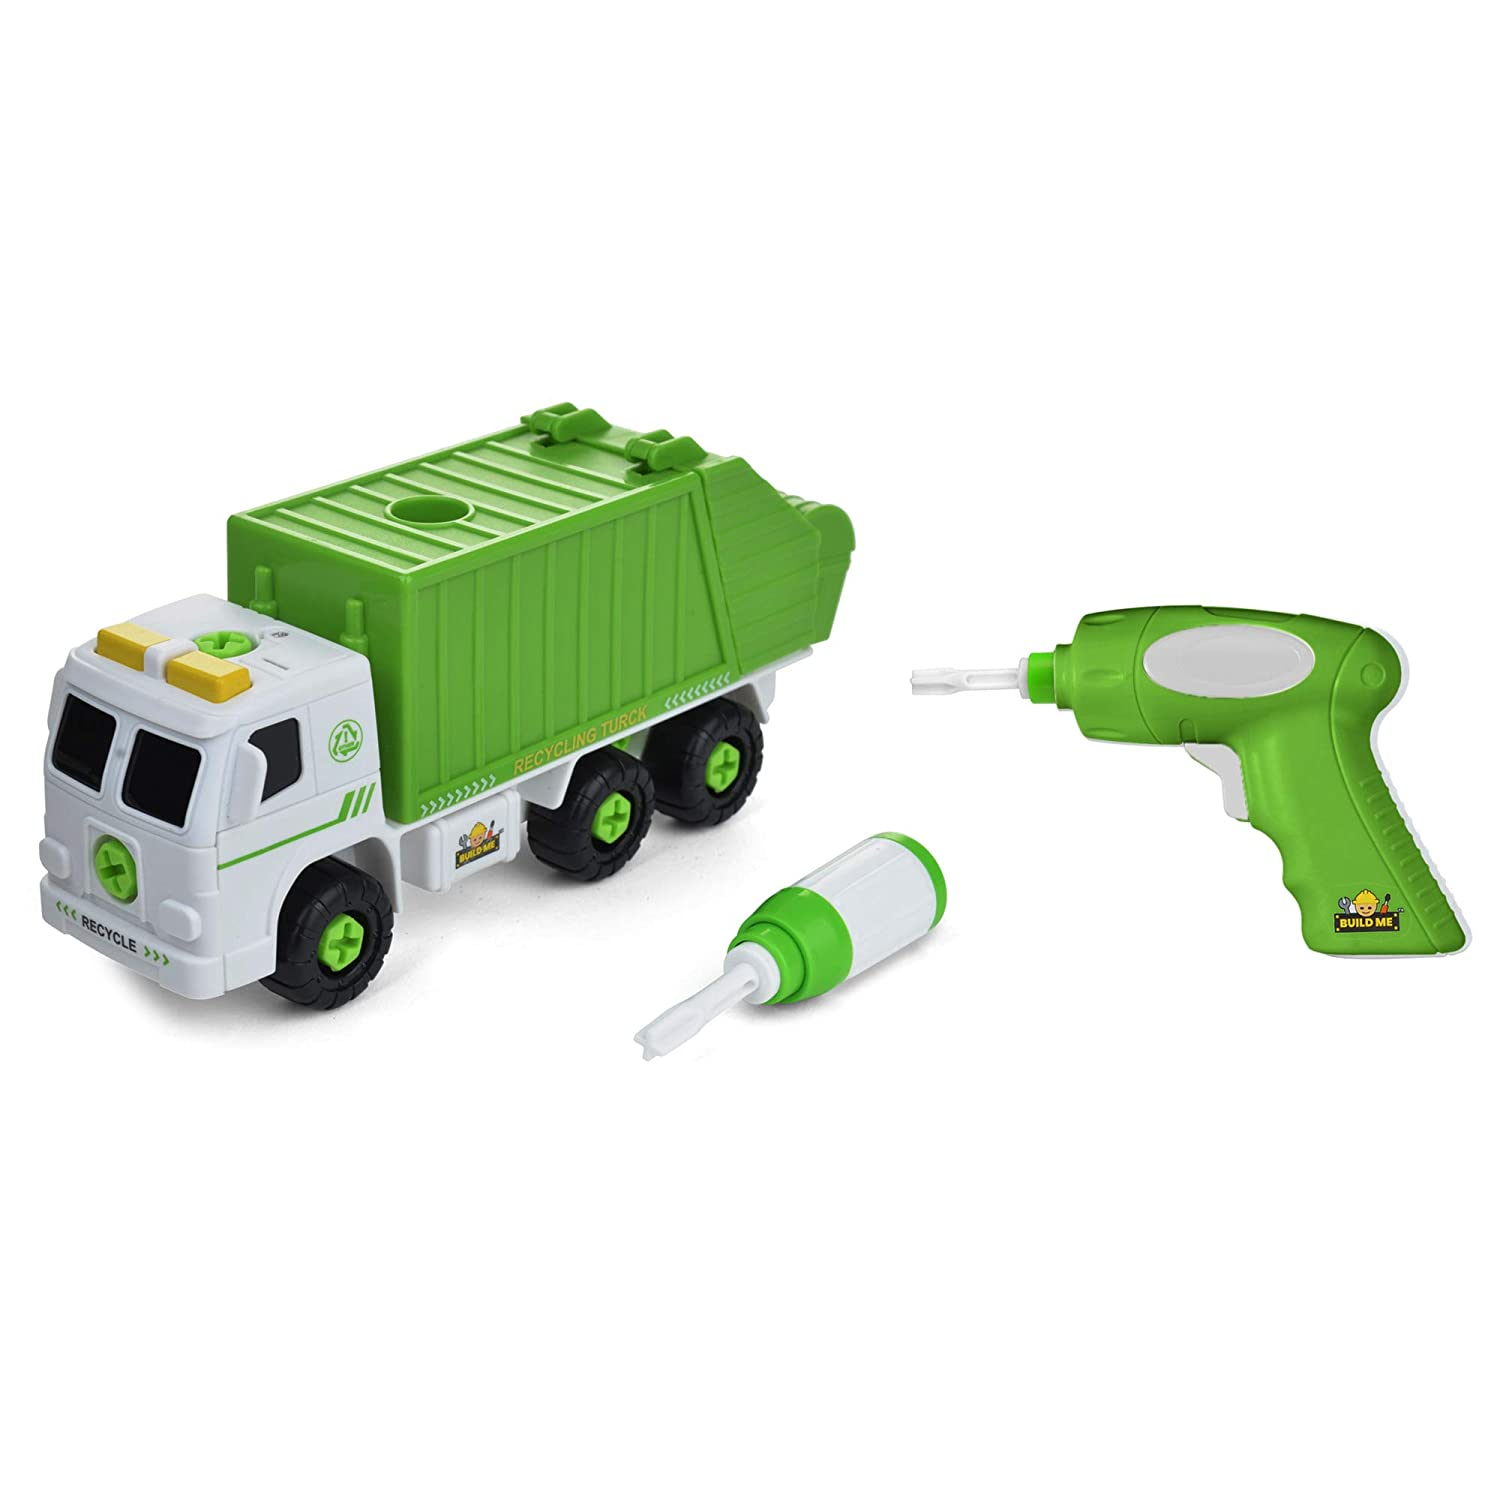 Take Apart Recycling Truck with Sounds, Power Drill – Build Your Own Garbage Truck with 30 Piece Set - Educational STEM Toys for Toddlers - Engineering Building Kit Ages 3-6